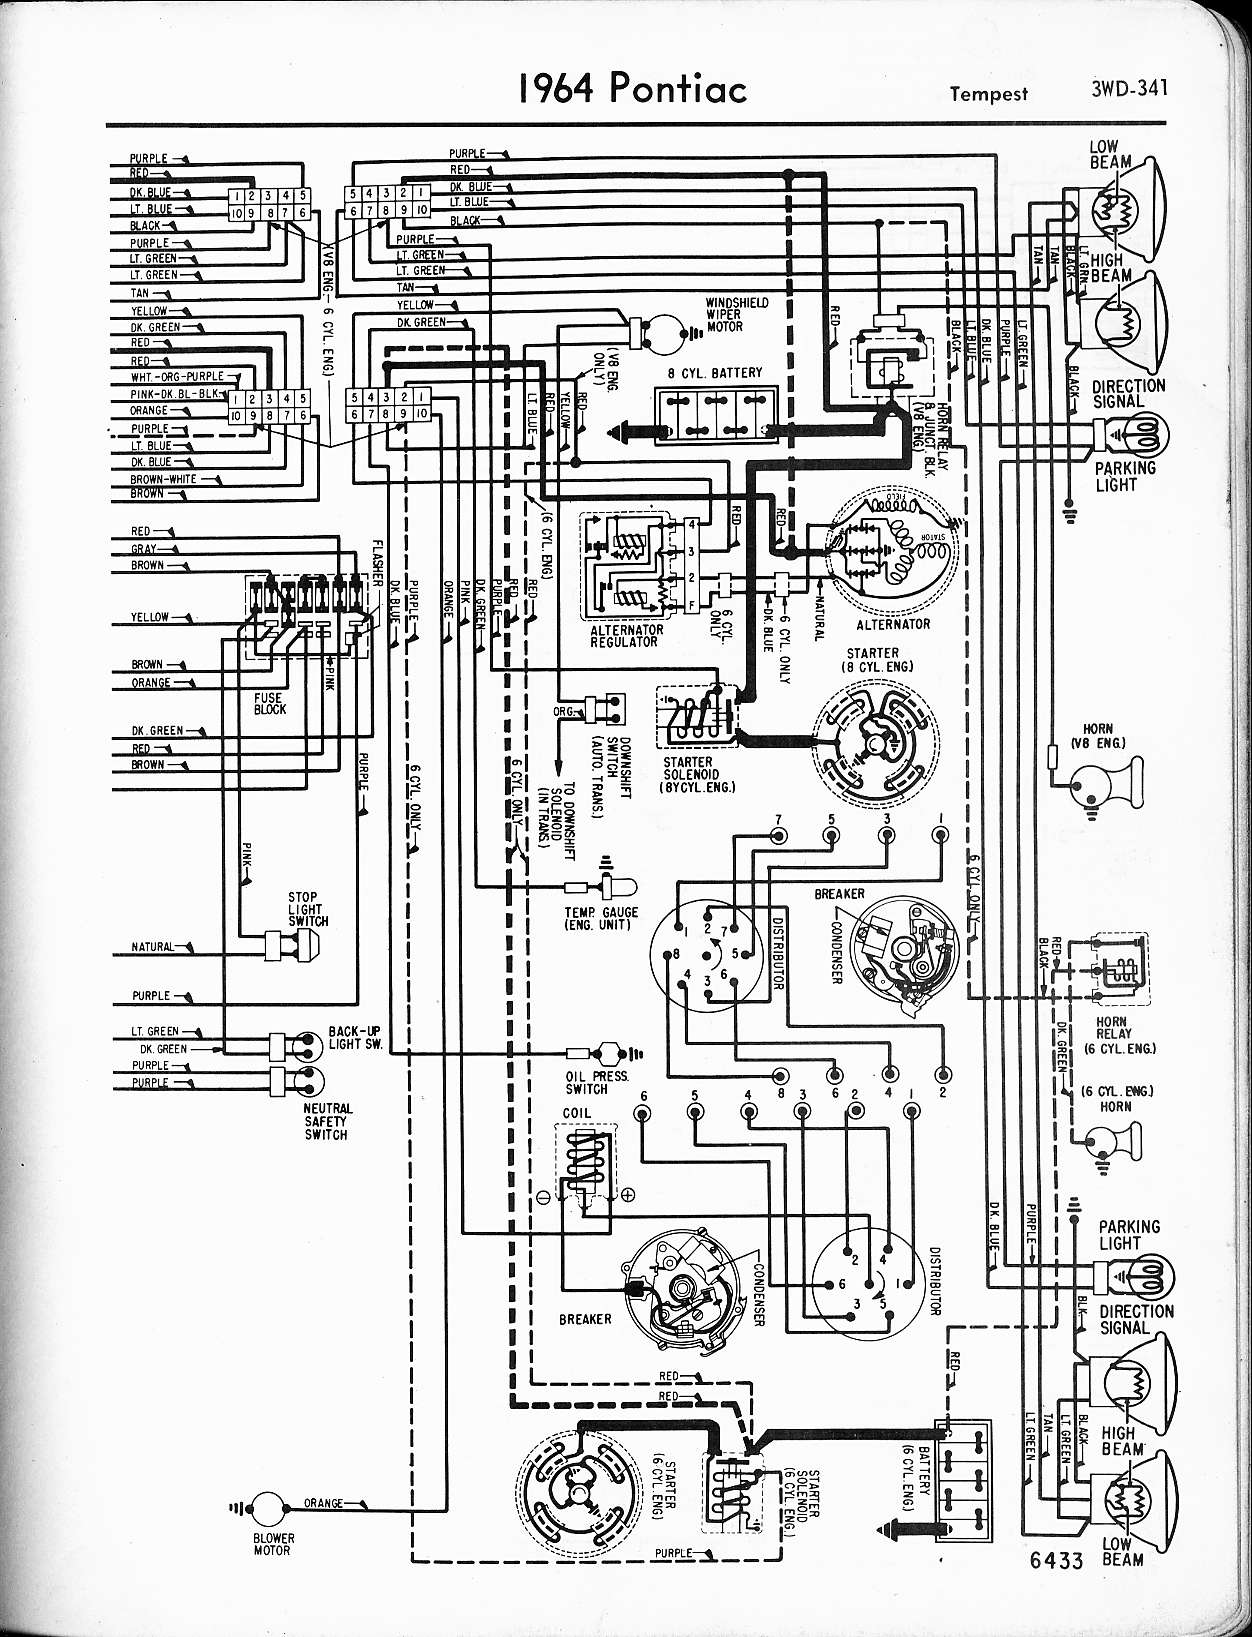 wallace racing wiring diagrams rh wallaceracing com 1966 GTO Wiring-Diagram 1964 GTO Engine Wiring-Diagram